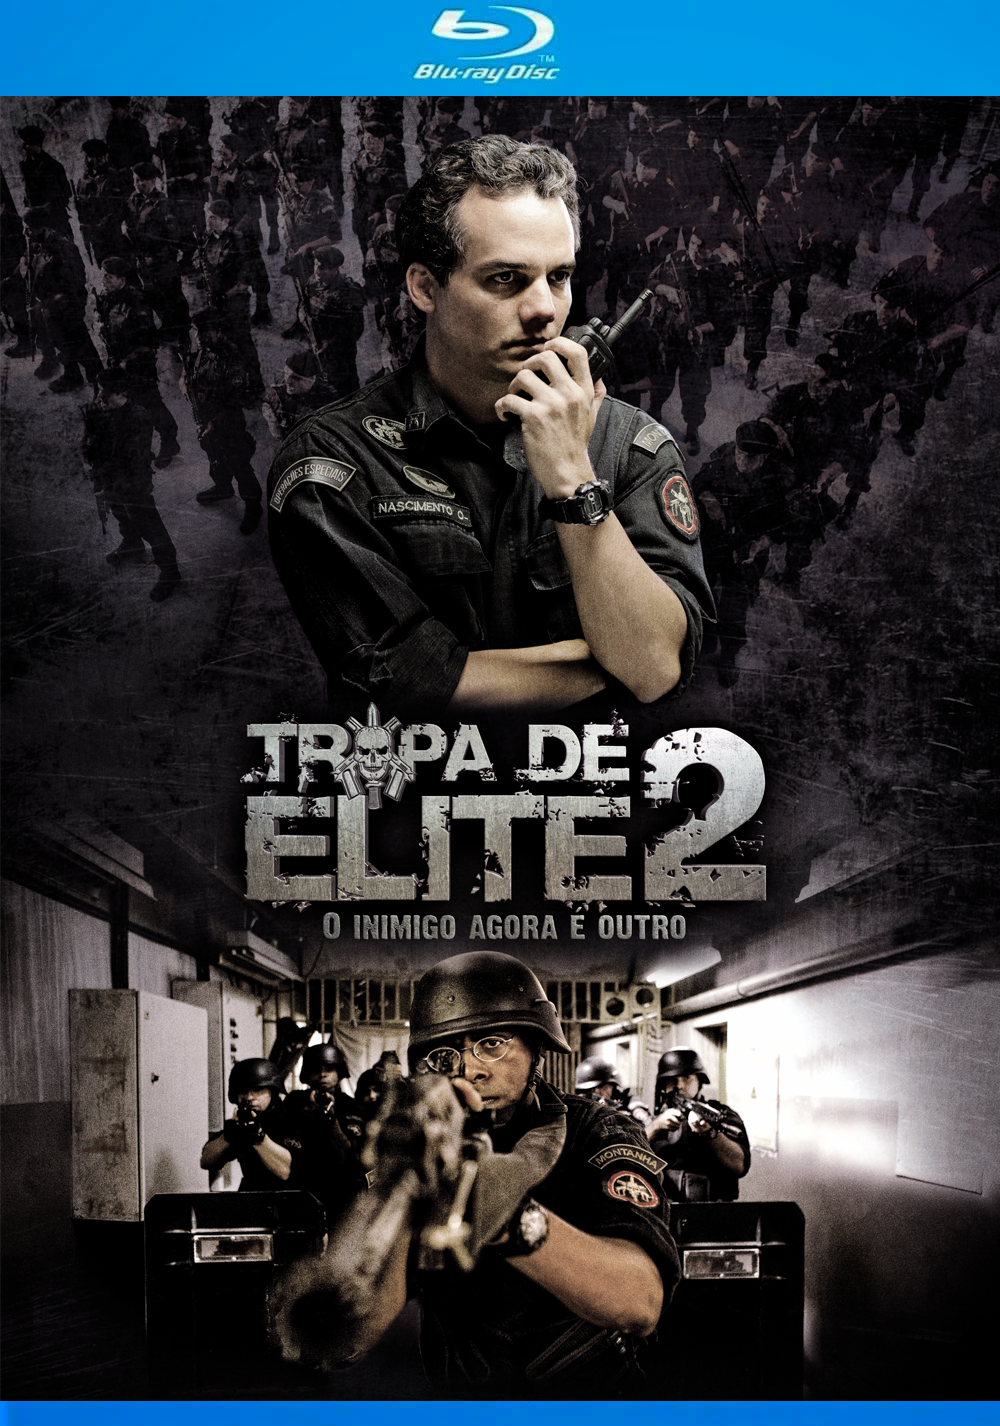 Download Tropa de Elite 2: O Inimigo agora é outro (2010) - Dublado MKV 720p BDRip MEGA